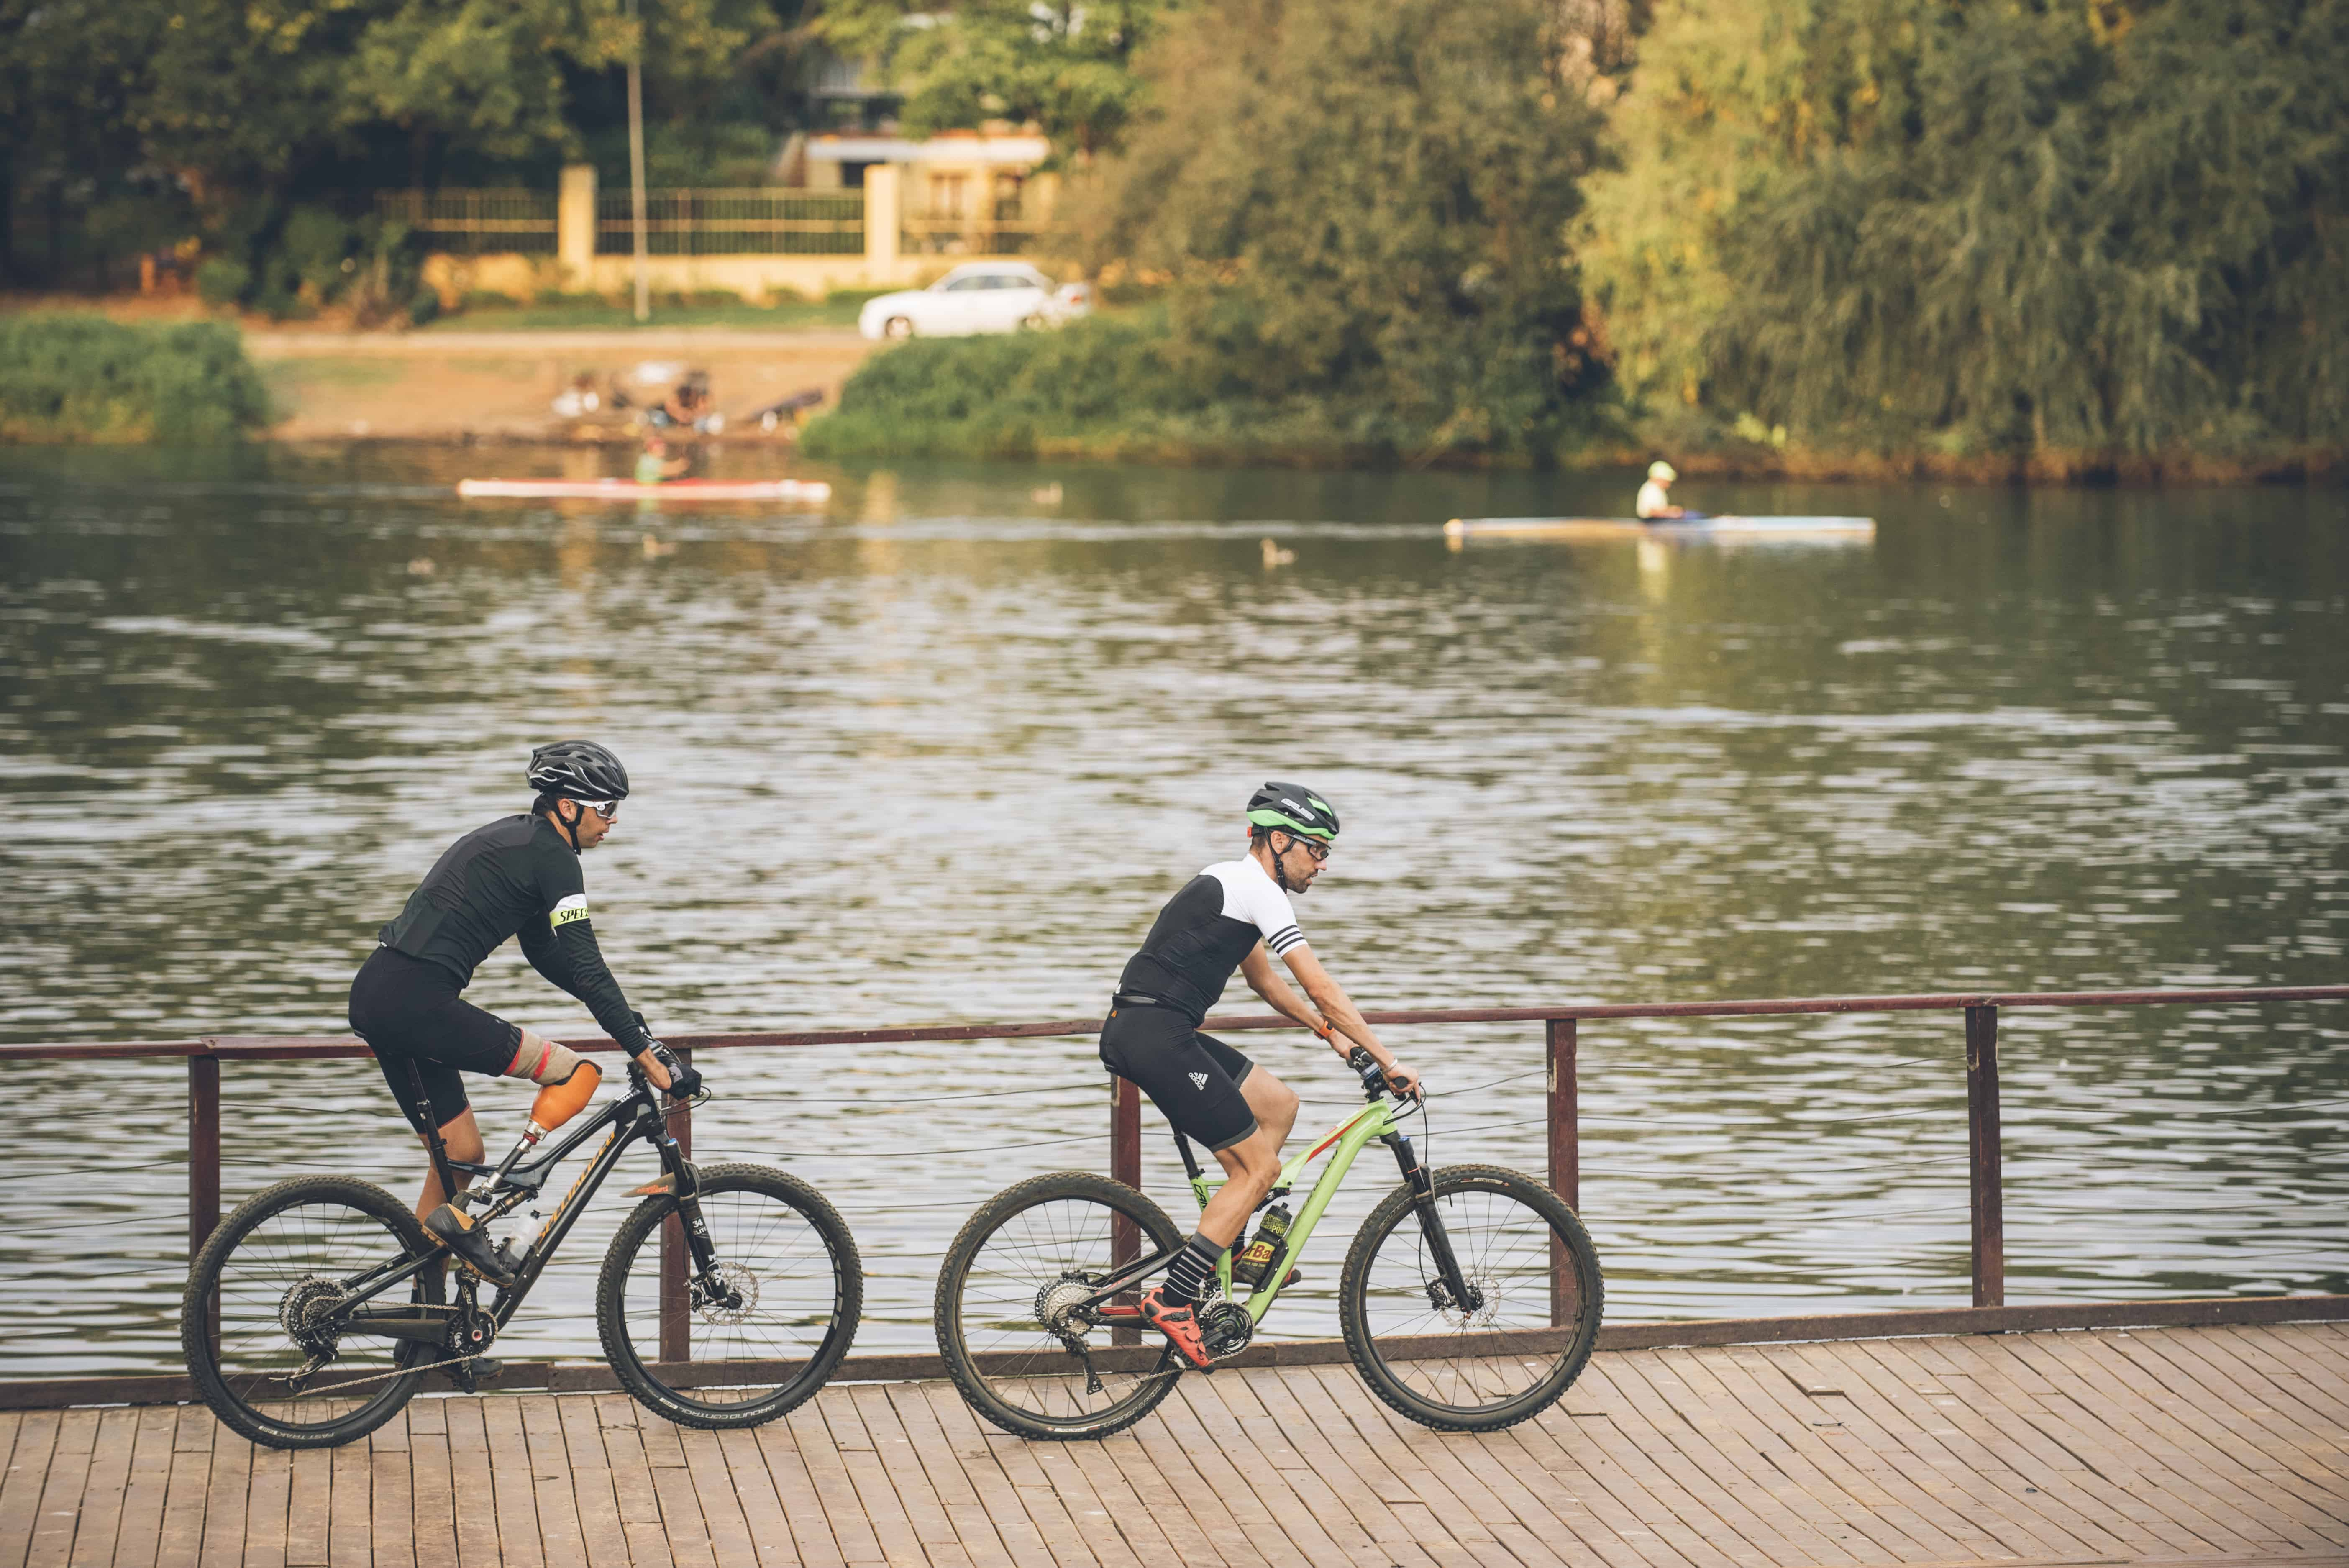 wow-rides-die-spruit-bicycling-magazine-dna-photograpers-35